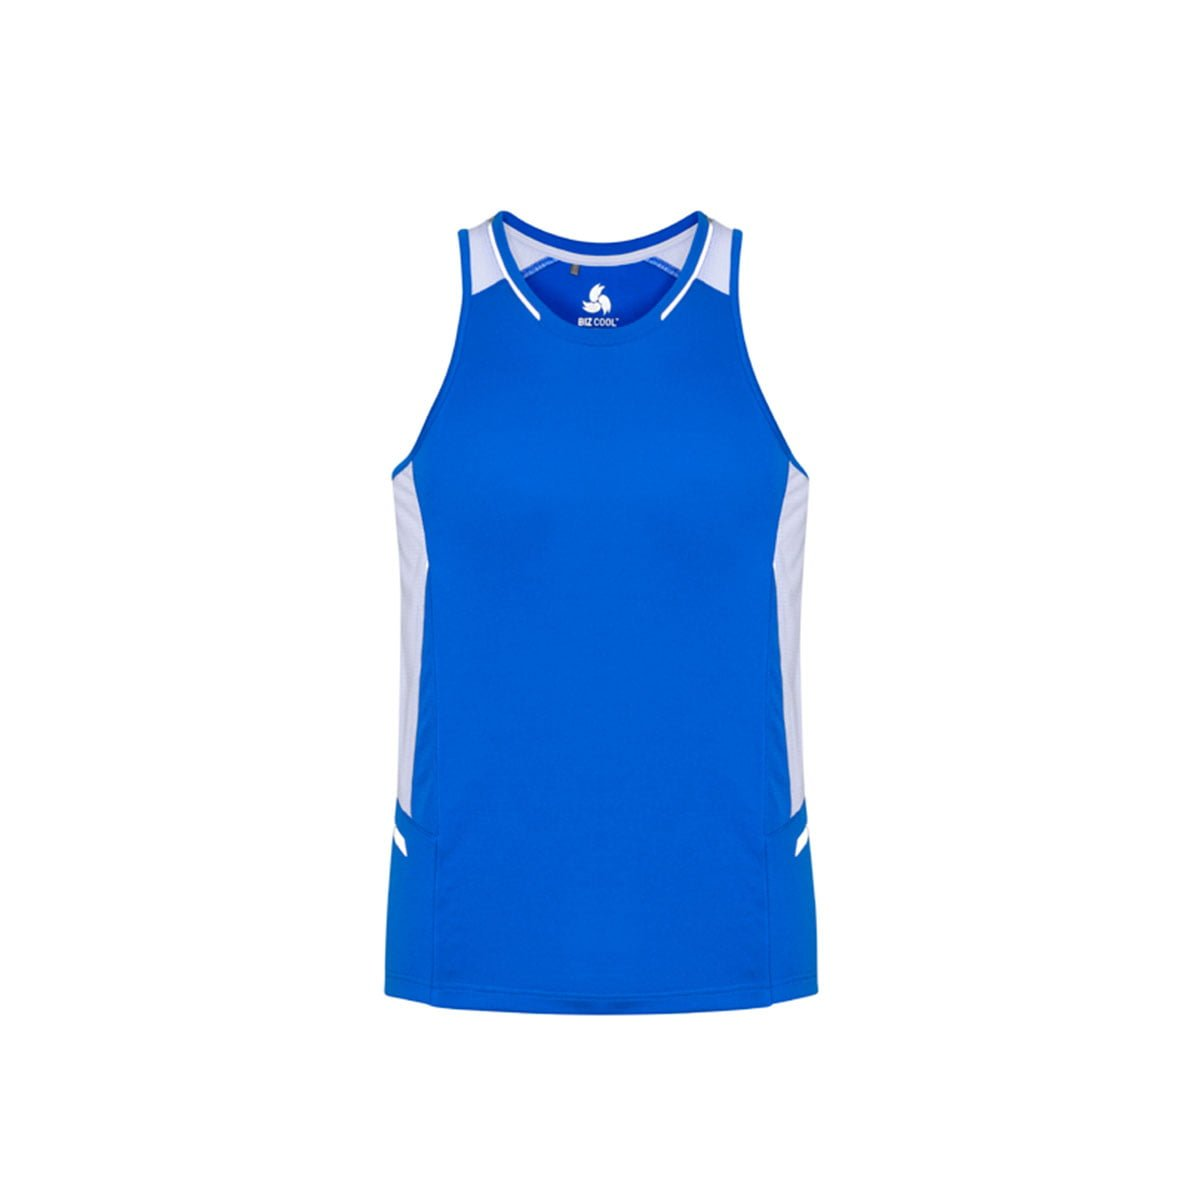 Mens Renegade Singlet-Royal / White / Silver